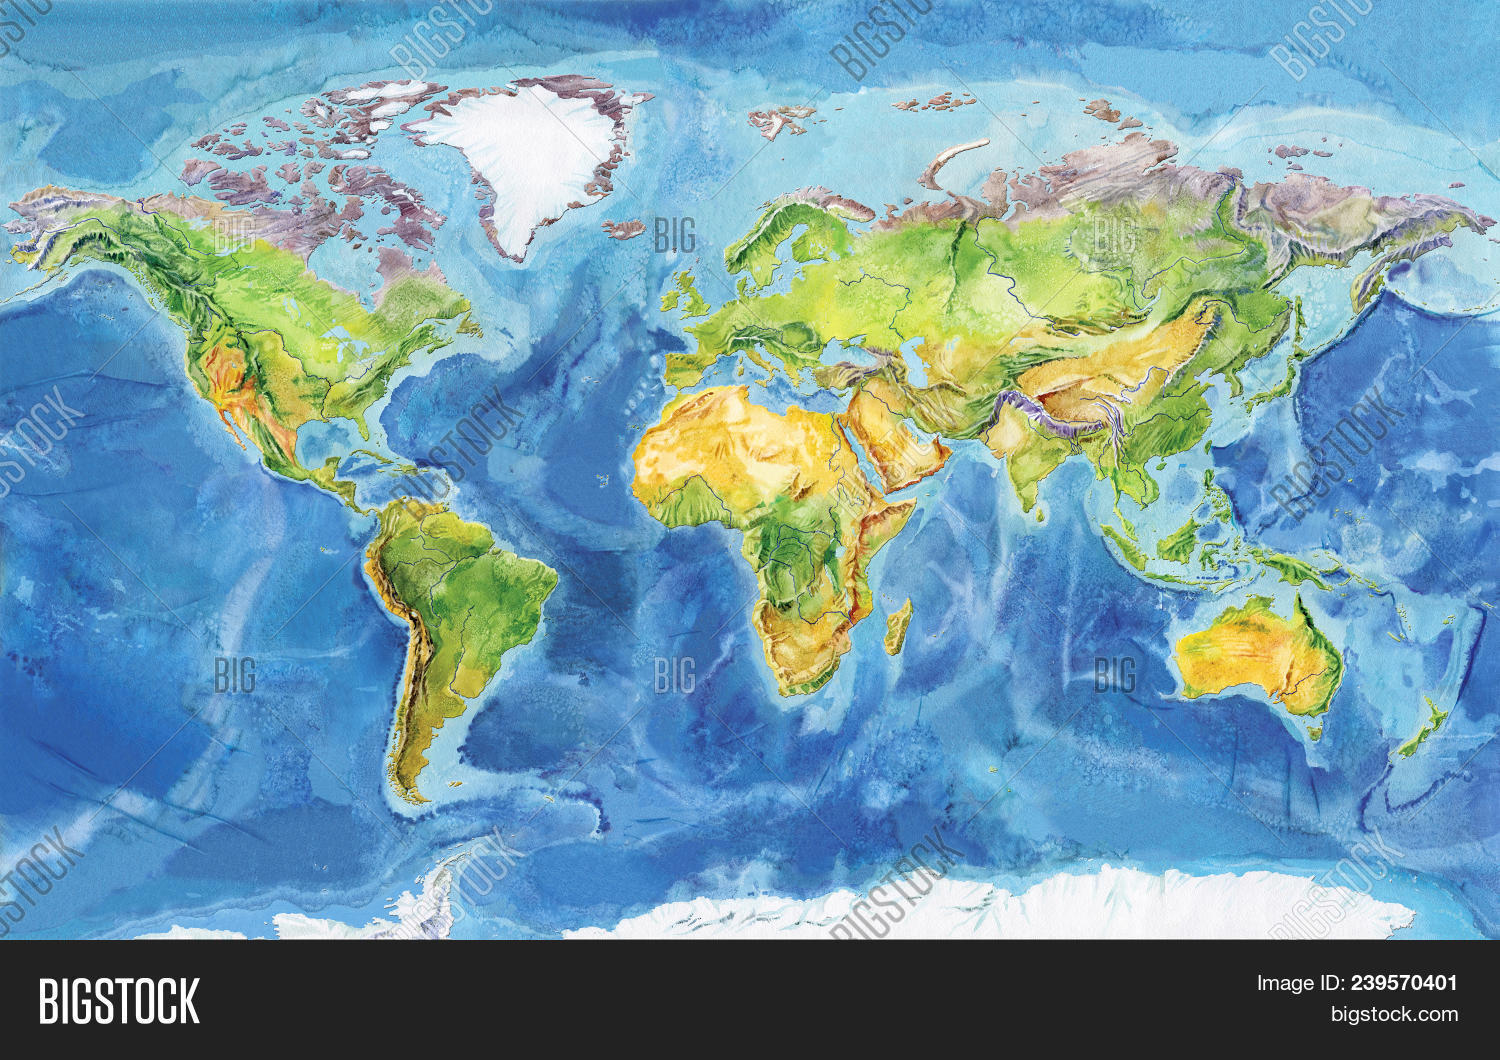 Physical Map Of Europe And Asia.Watercolor Image Photo Free Trial Bigstock